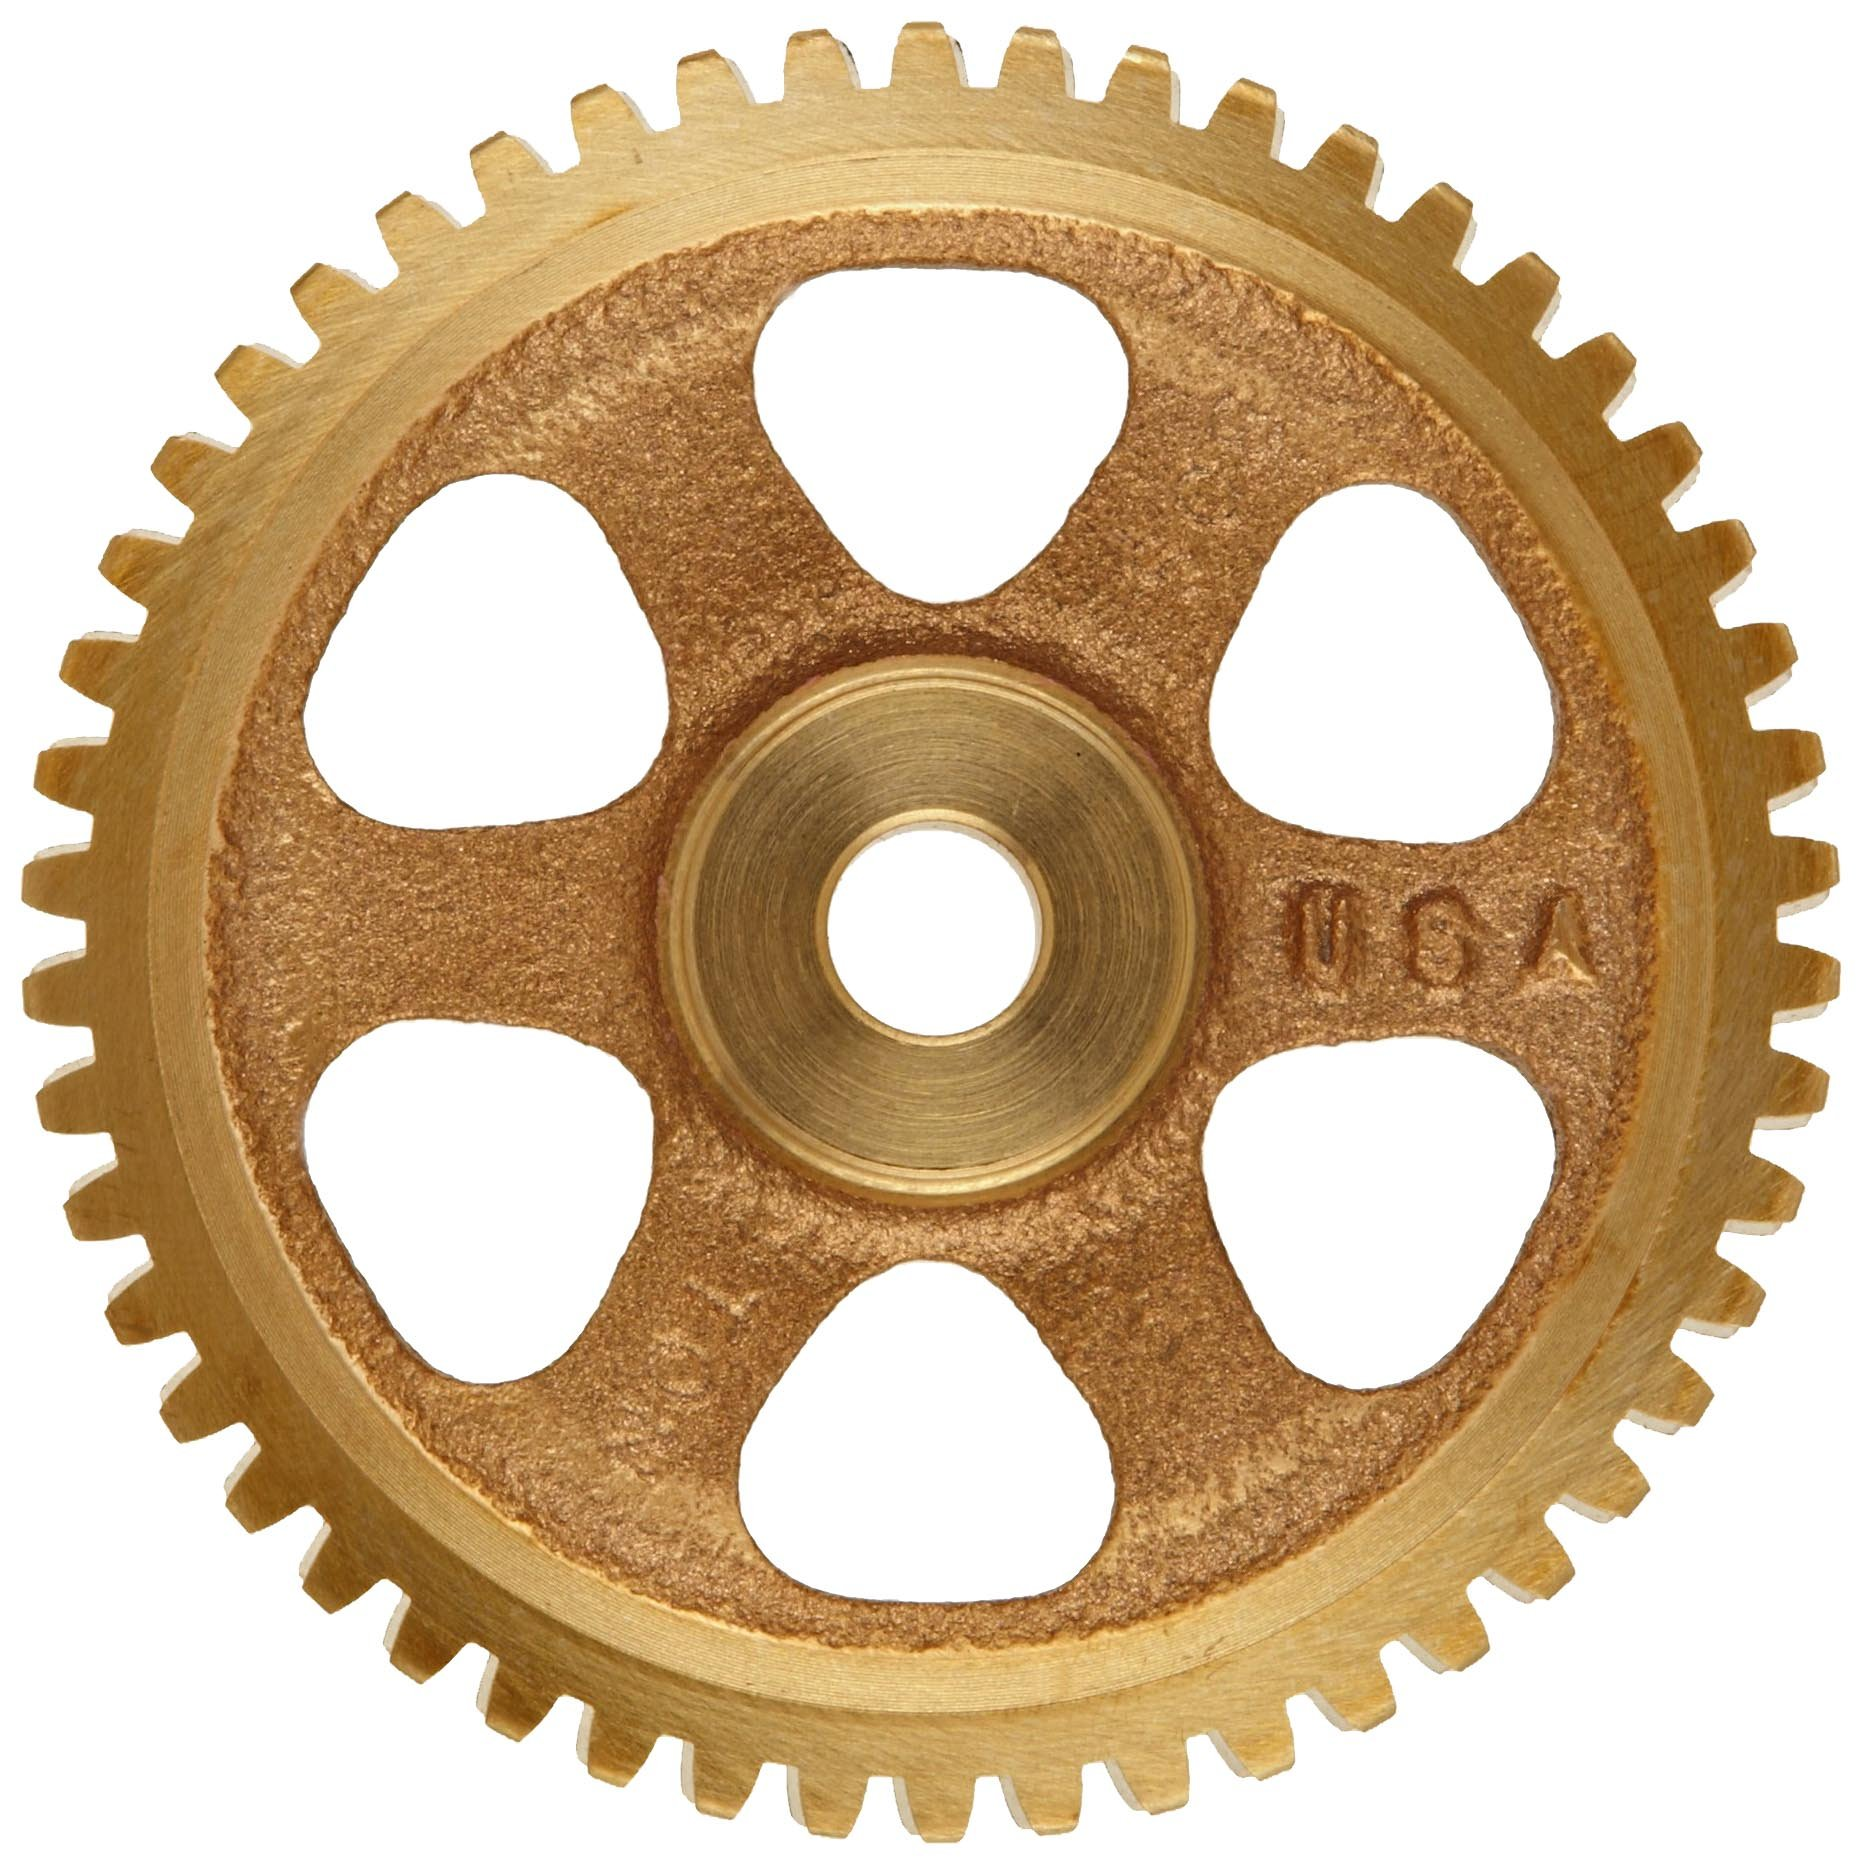 Boston Gear G1048 Worm Gear, Spoke, 14.5 PA Pressure Angle, 0.375'' Bore, 60:1 Ratio, 60 TEETH, RH